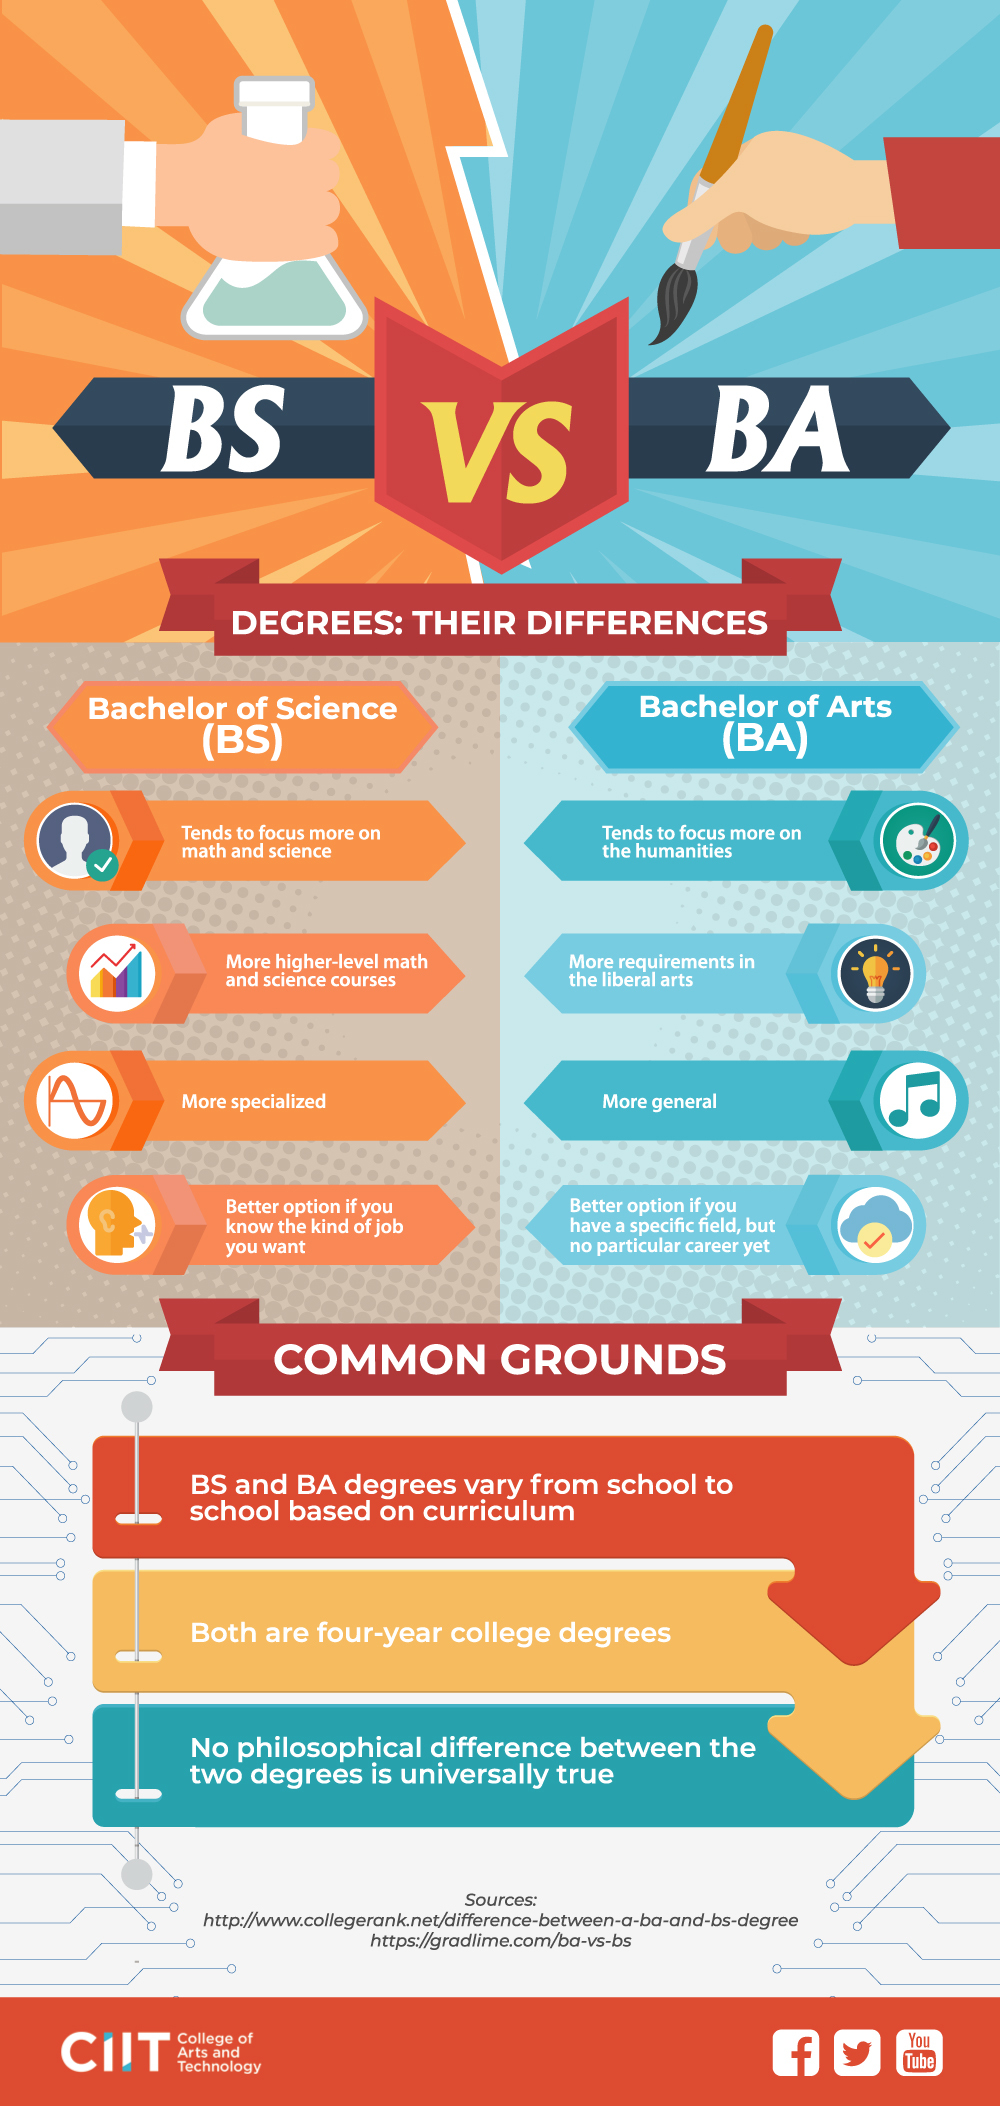 BS vs BA: Differences